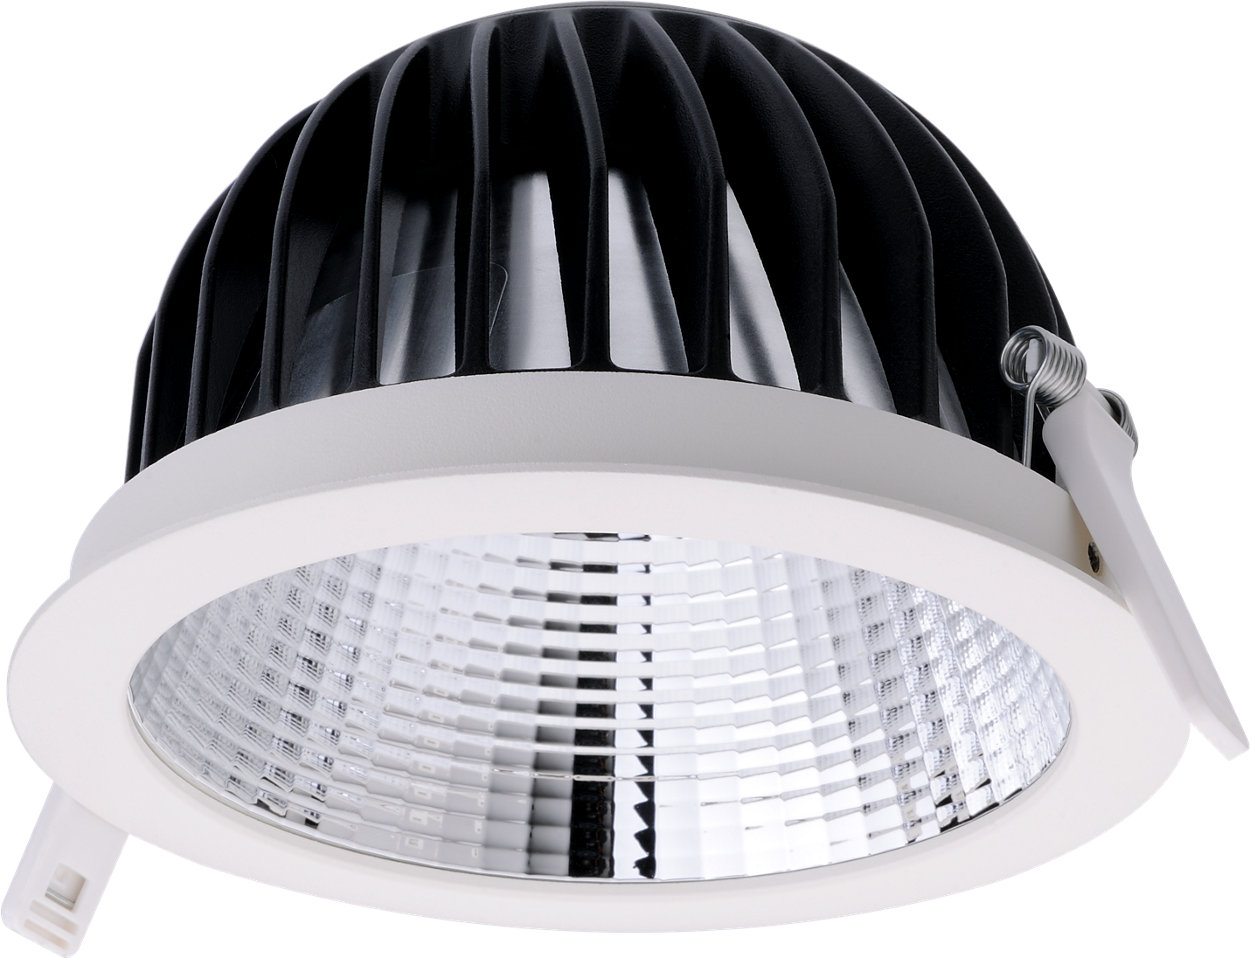 Miniaturized downlight with leading optical performance and great diversity